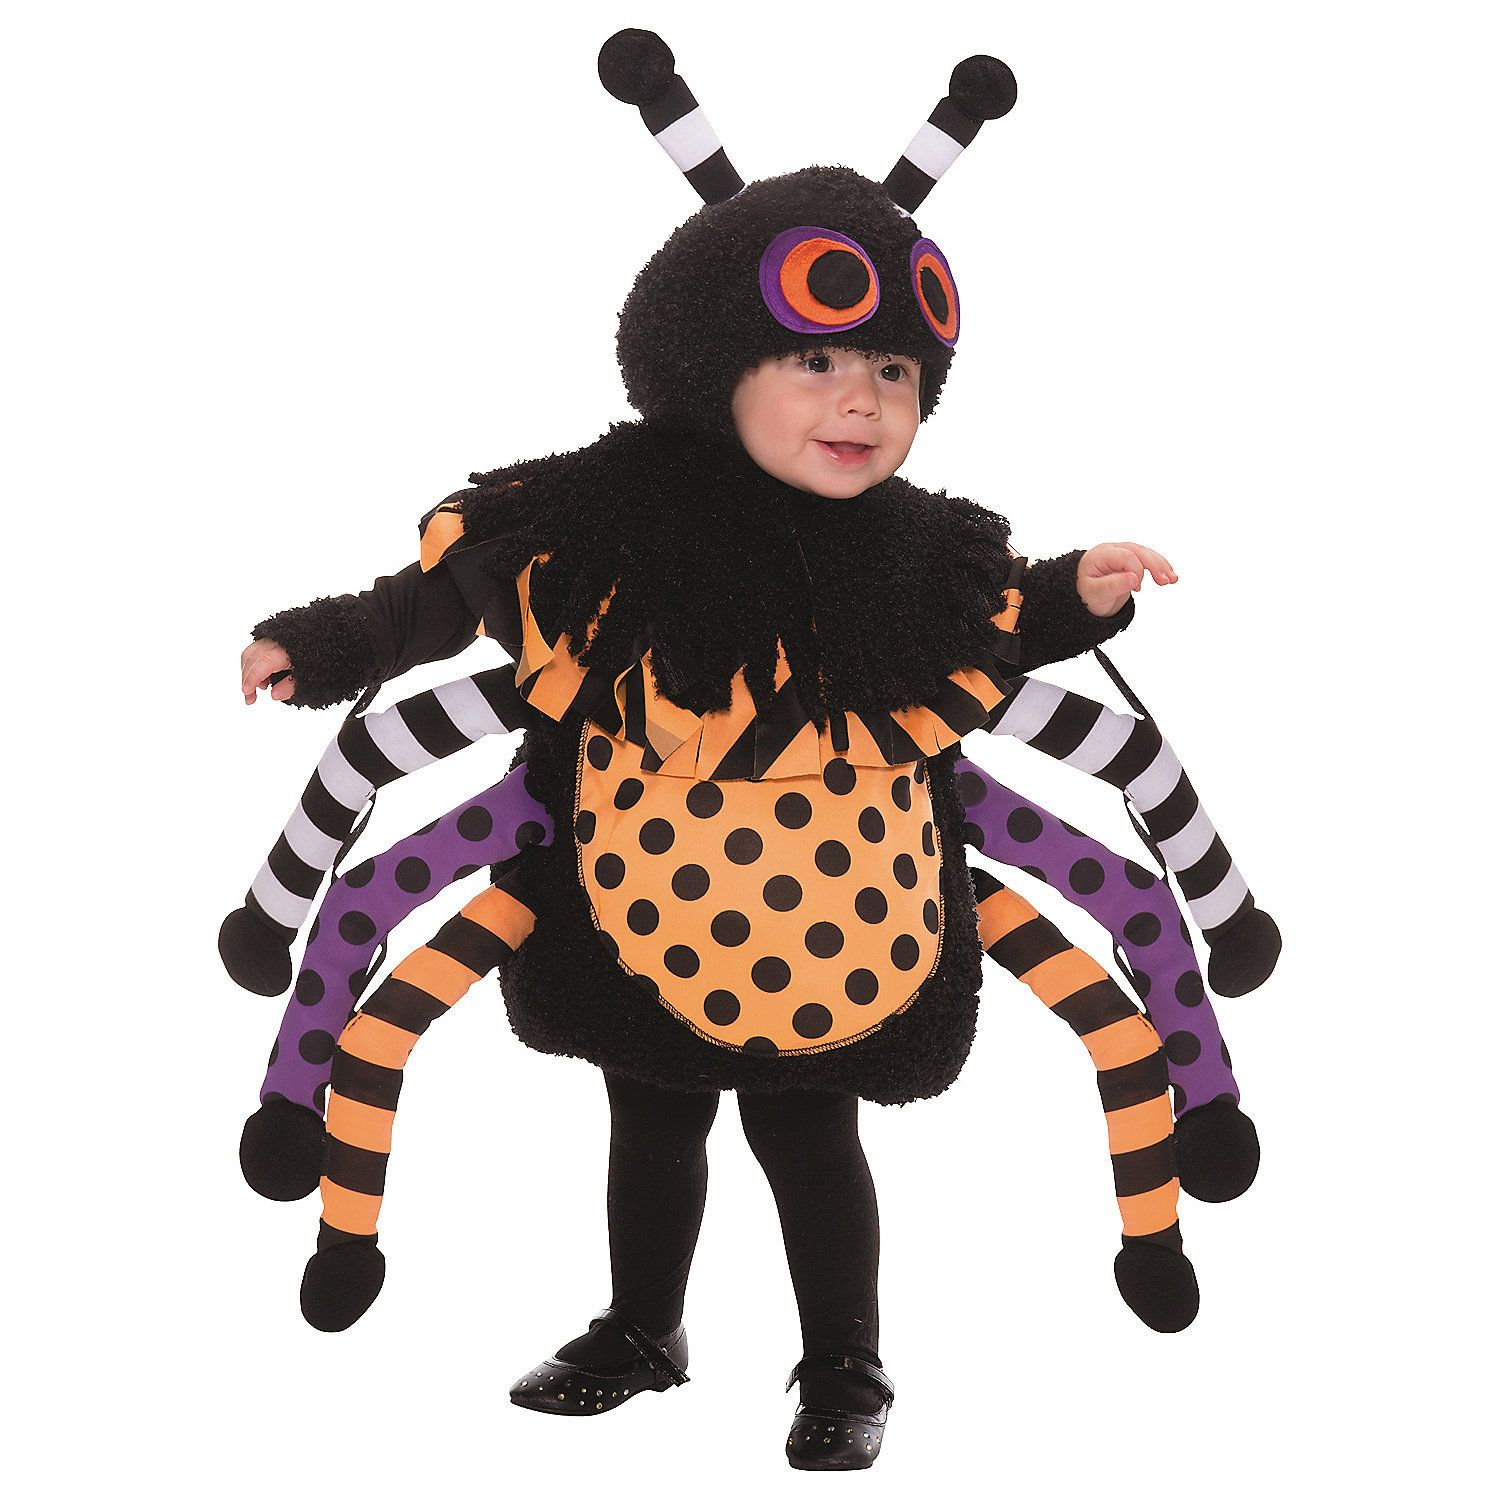 Spider Costume for Toddlers - OrientalTrading.com | Angles and ...